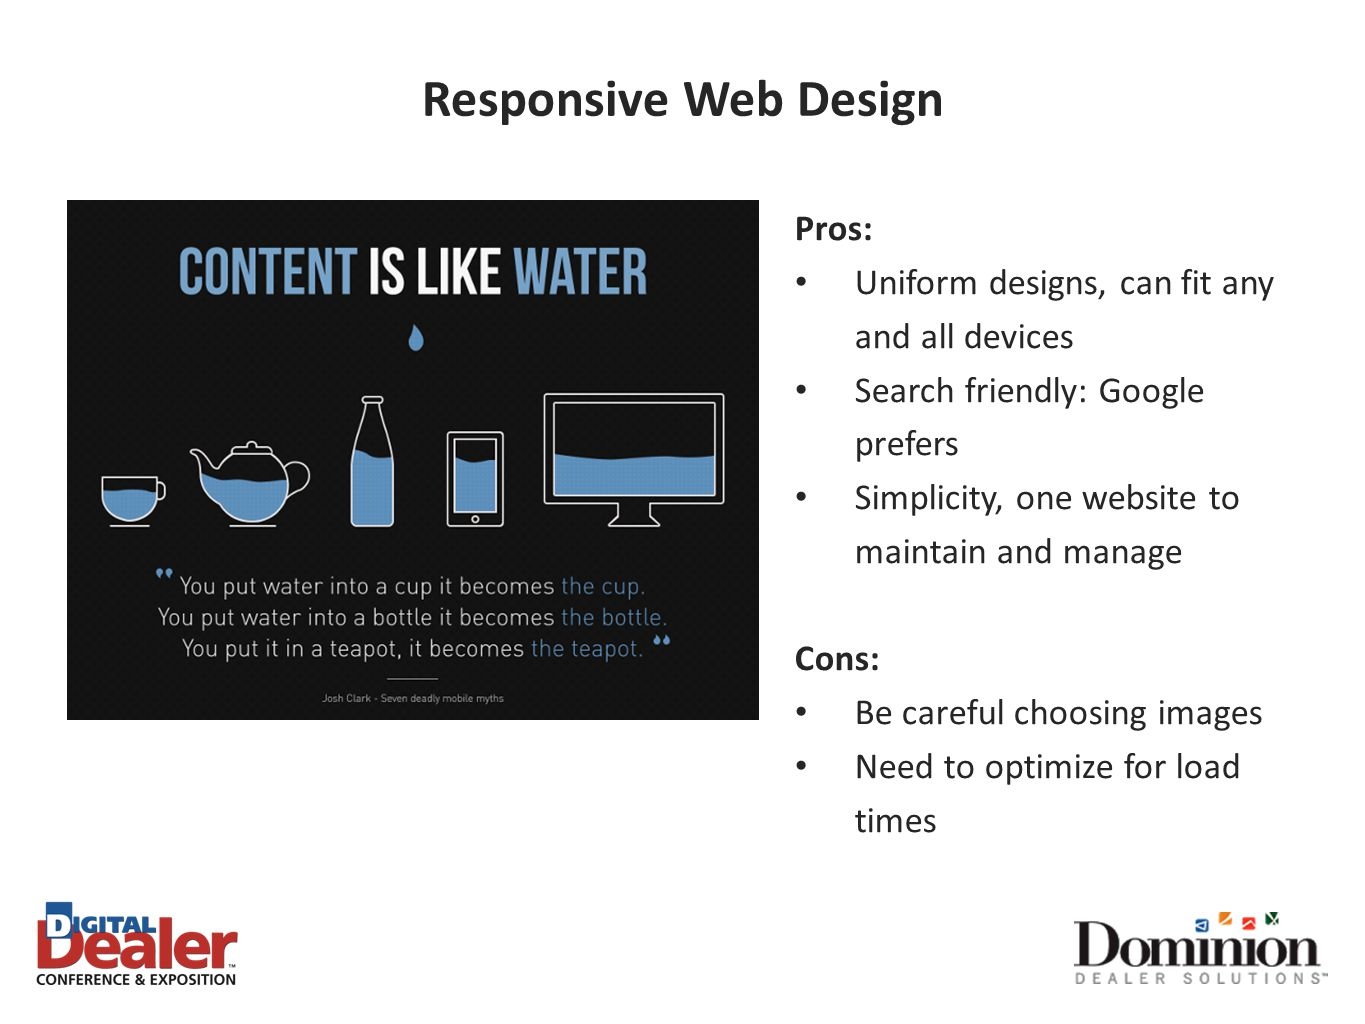 Responsive Web Design Pros: Uniform designs, can fit any and all devices Search friendly: Google prefers Simplicity, one website to maintain and manage Cons: Be careful choosing images Need to optimize for load times